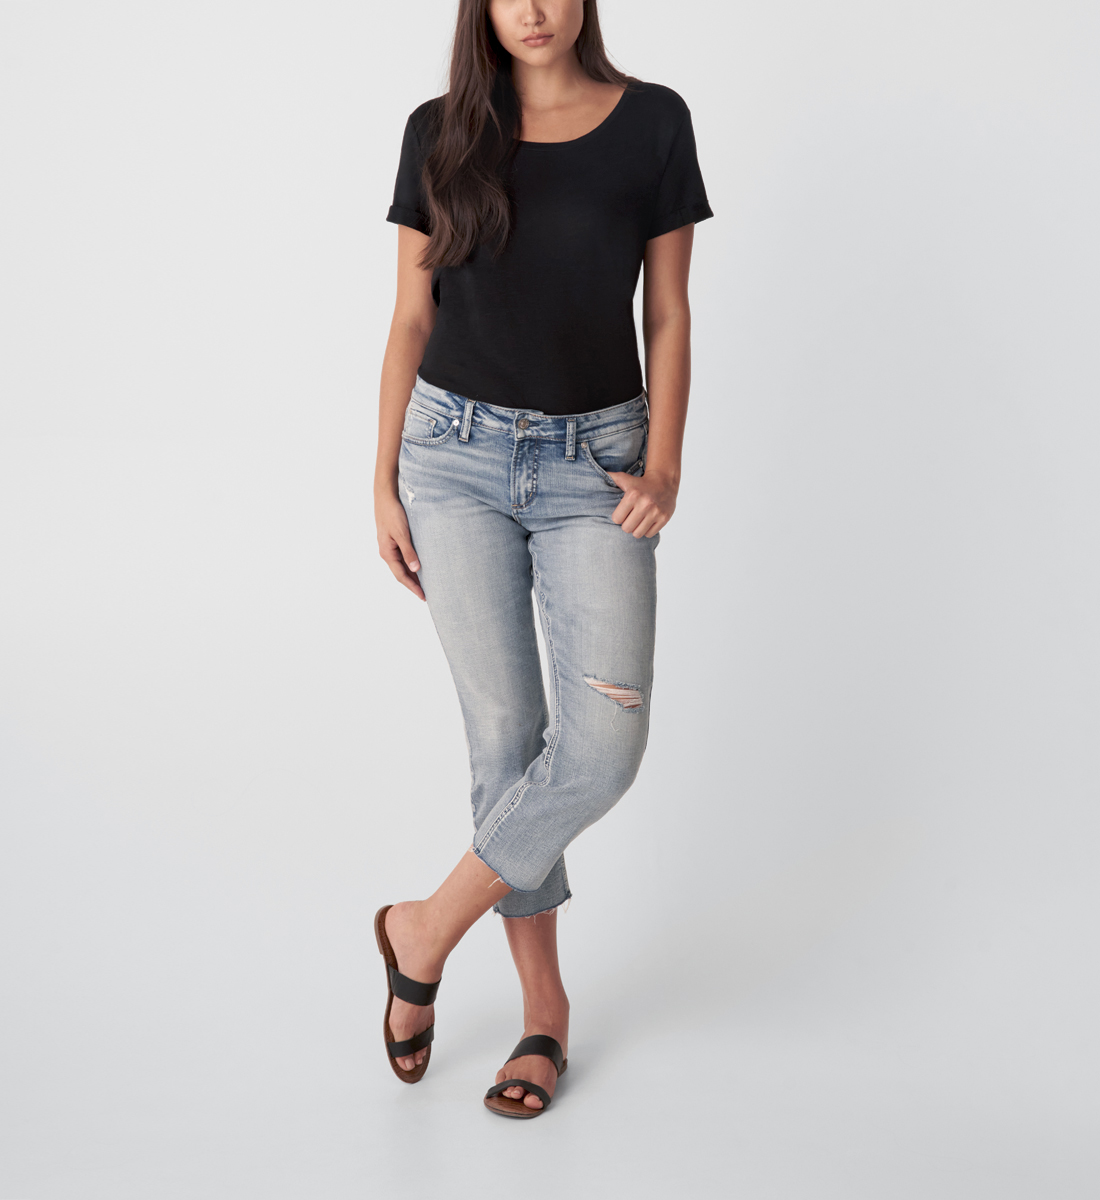 Silver Jeans Elyse Mid Rise Straight Crop Jeans